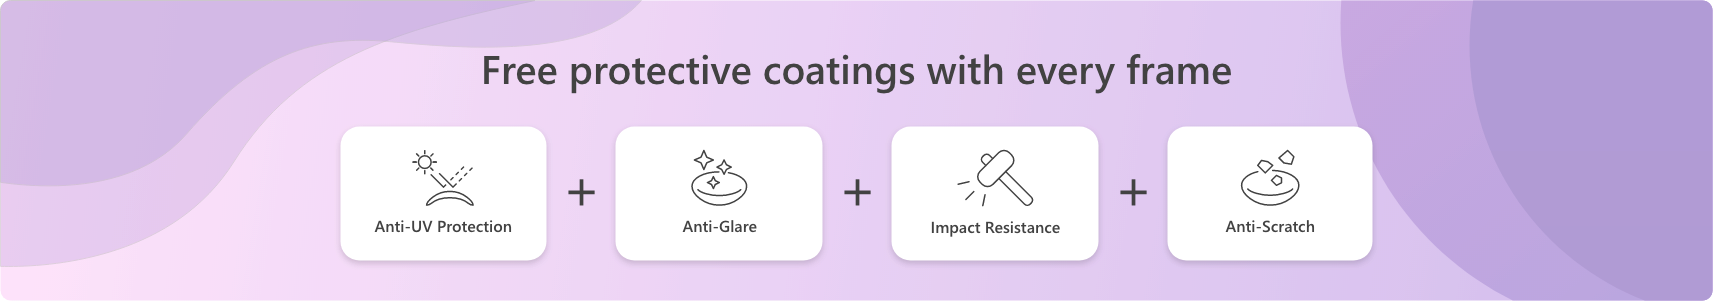 Free Coatings